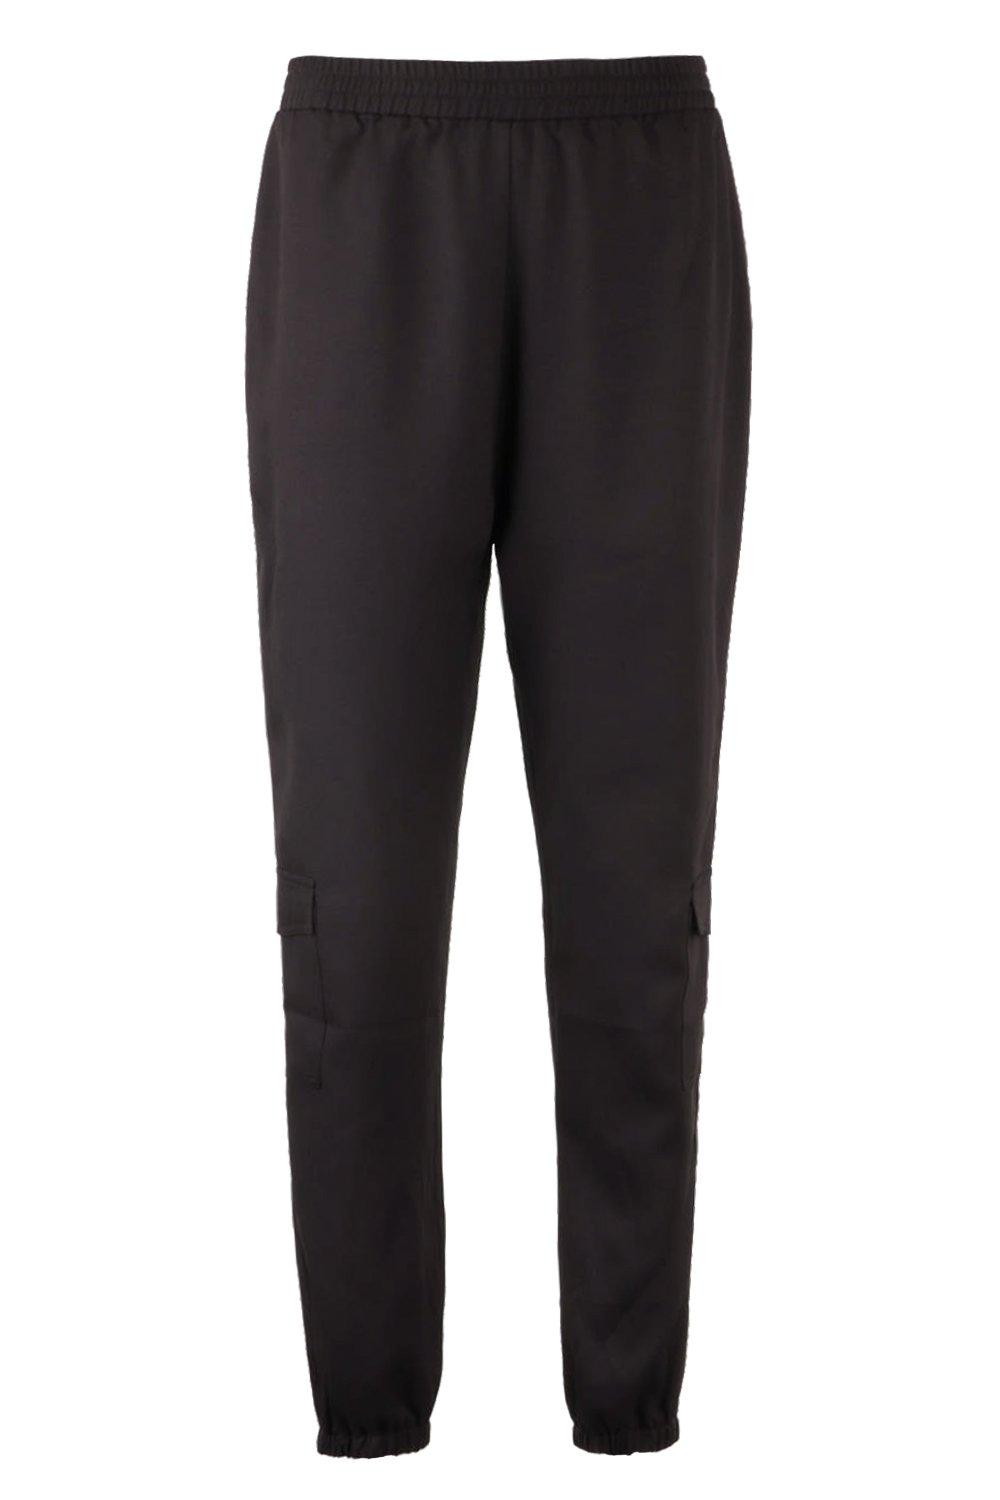 black Pocket Side Side Luxe Joggers Joggers Luxe Pocket Pocket black zq6f4R6